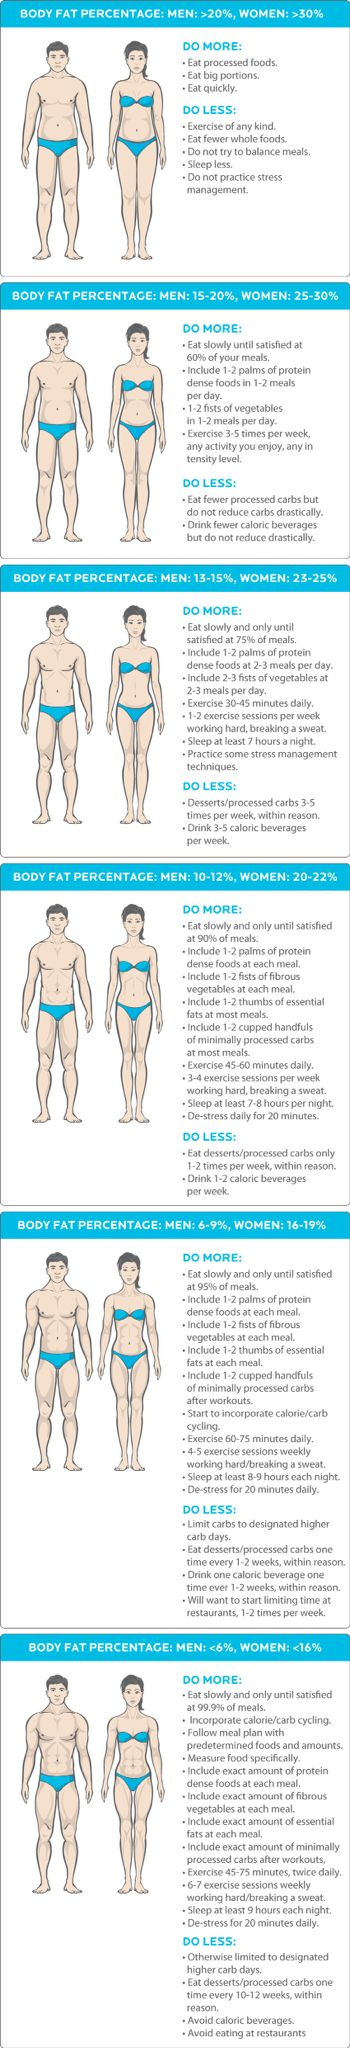 Good body: Dos and Don'ts